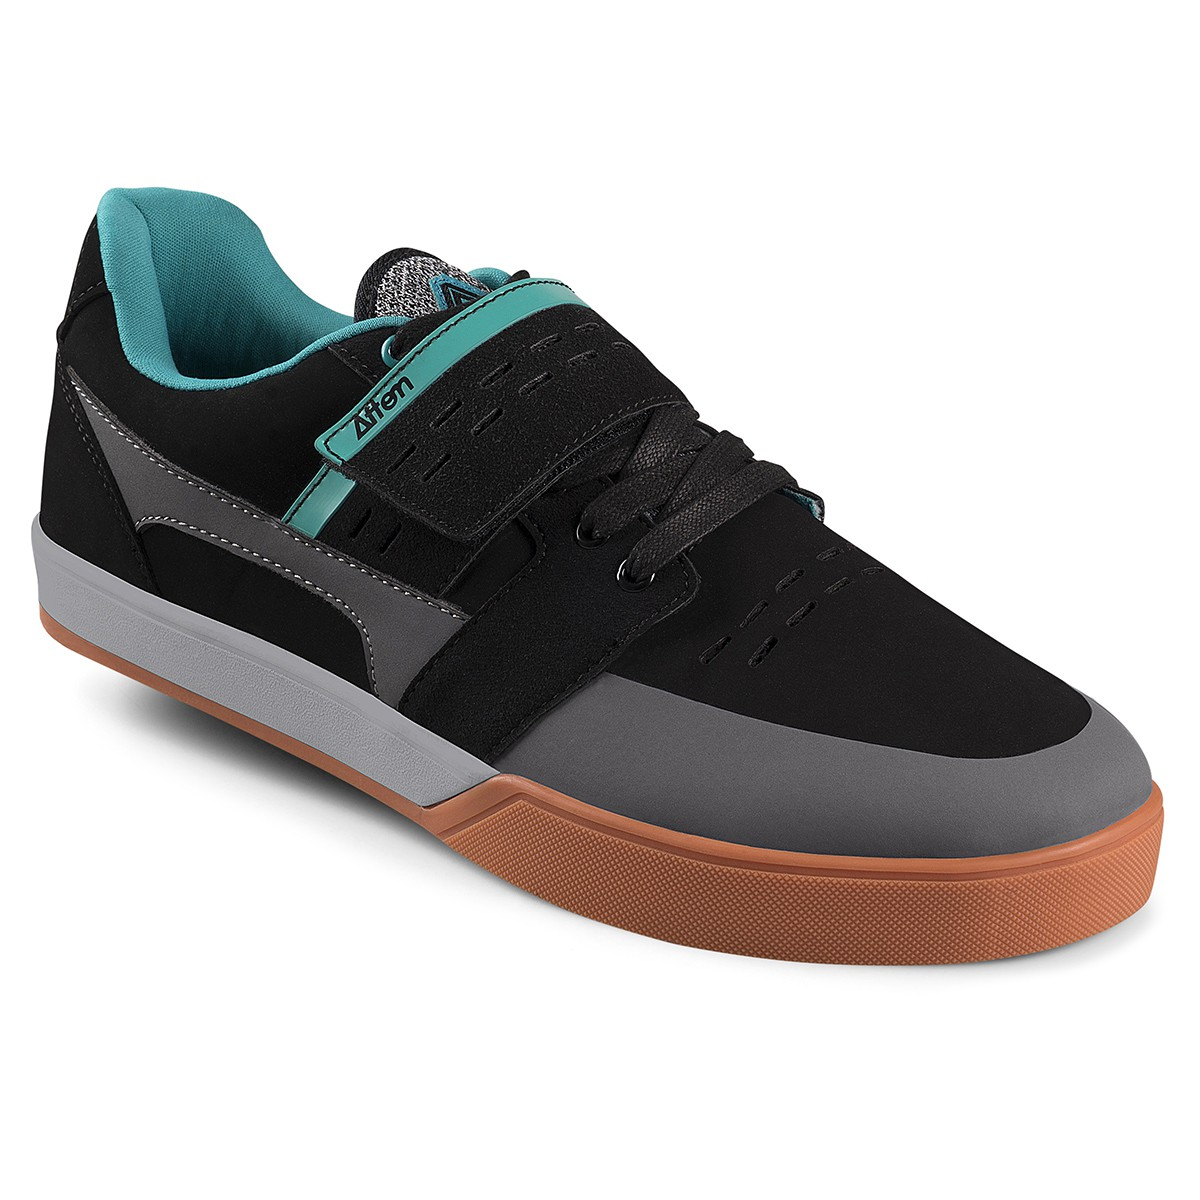 AFTON SHOES VECTAL BLACK/TURQUOISE